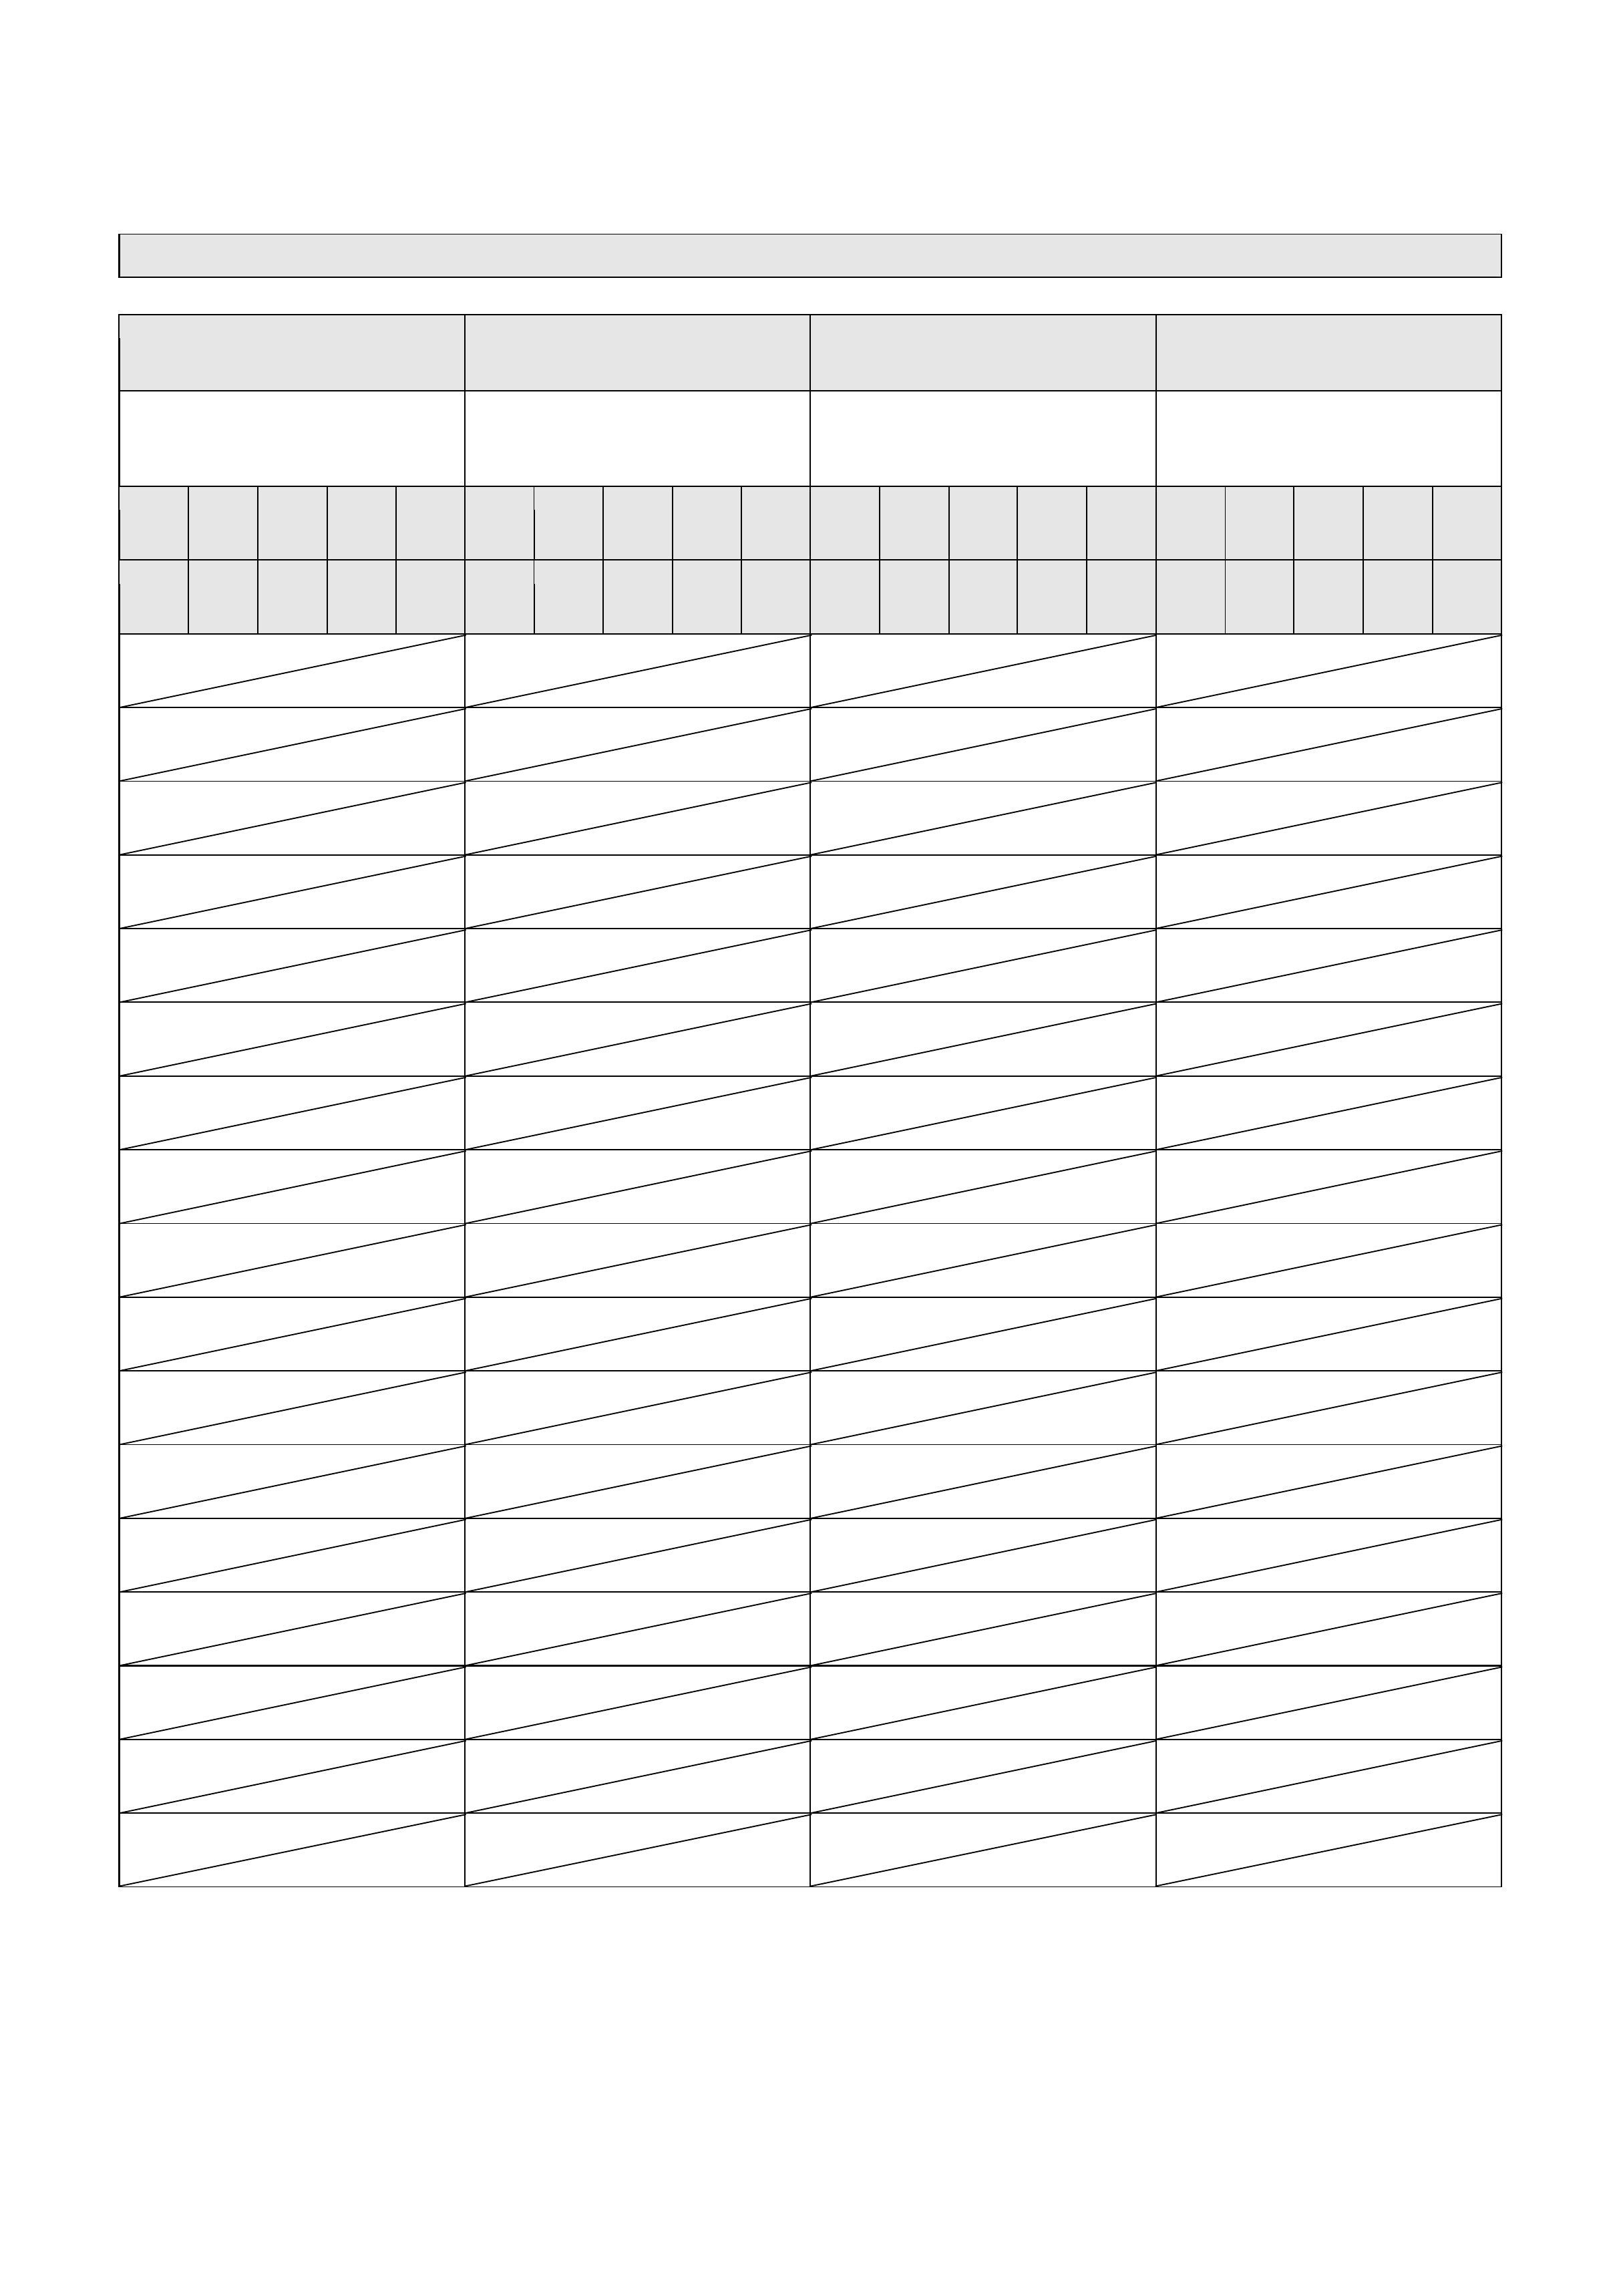 Phase 10 Score Sheet Sample Free Download – Sample Phase 10 Score Sheet Template